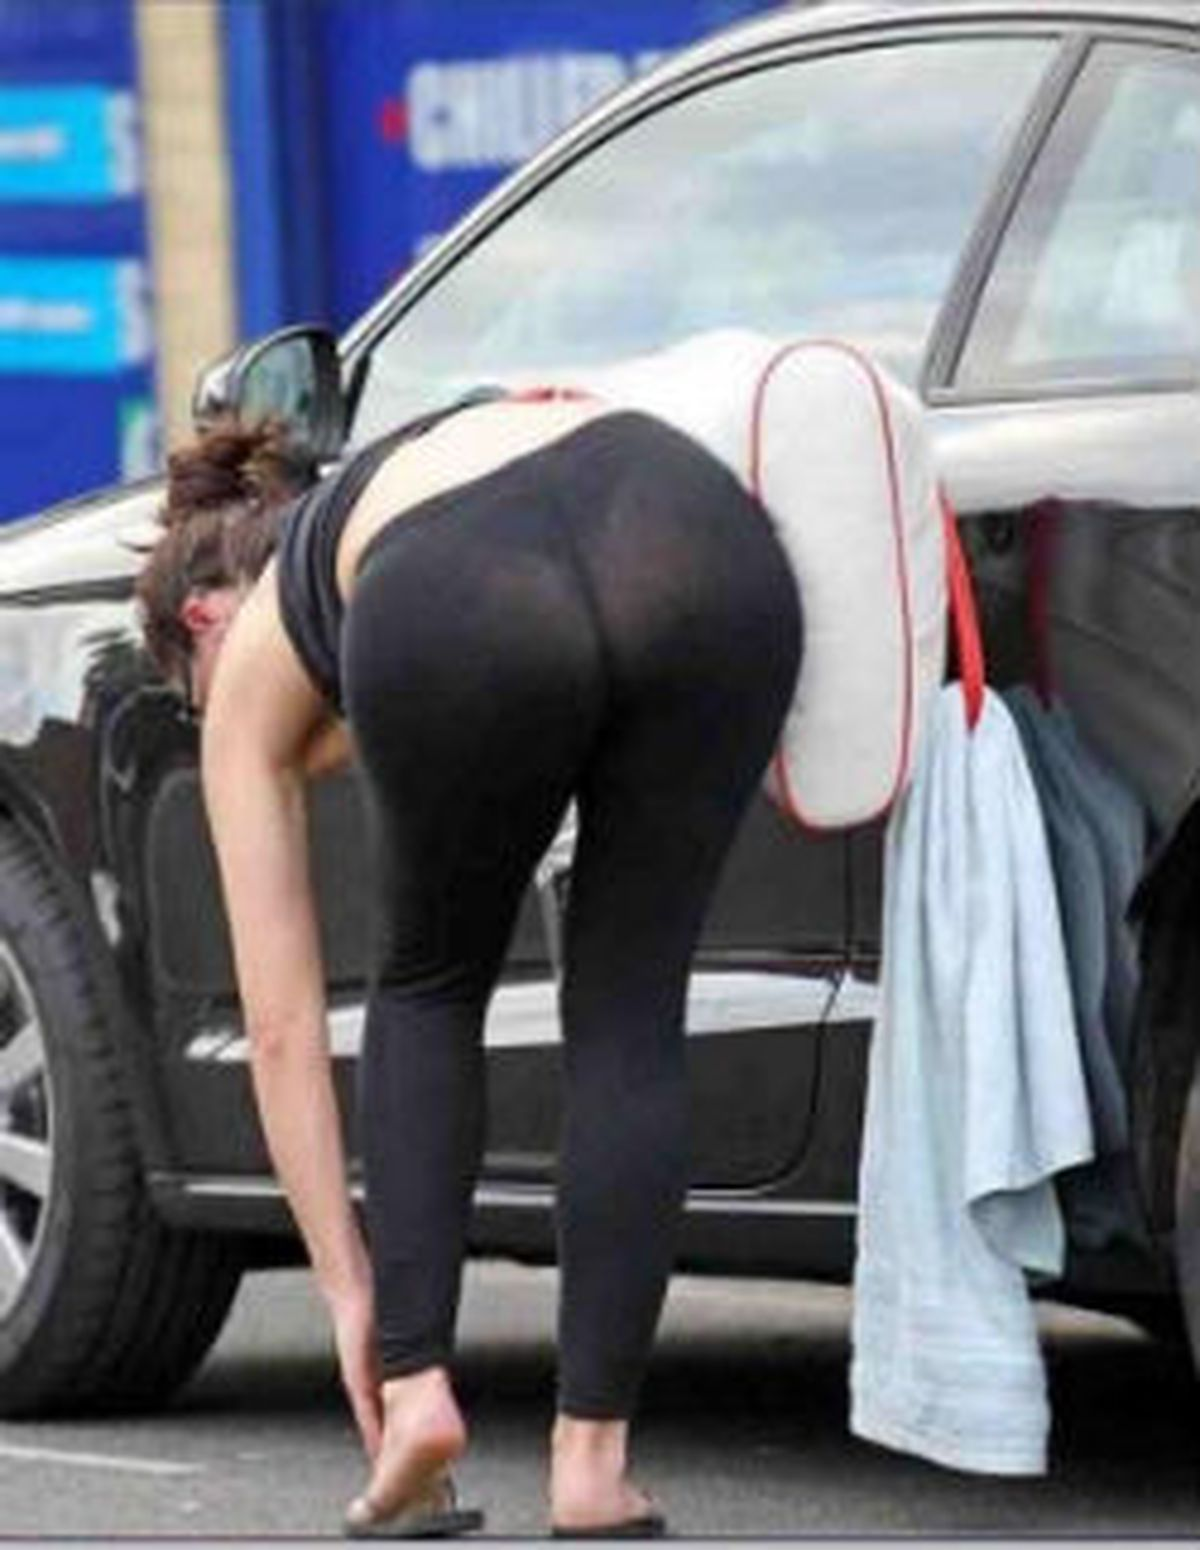 Lululemon see through yoga pants pictures